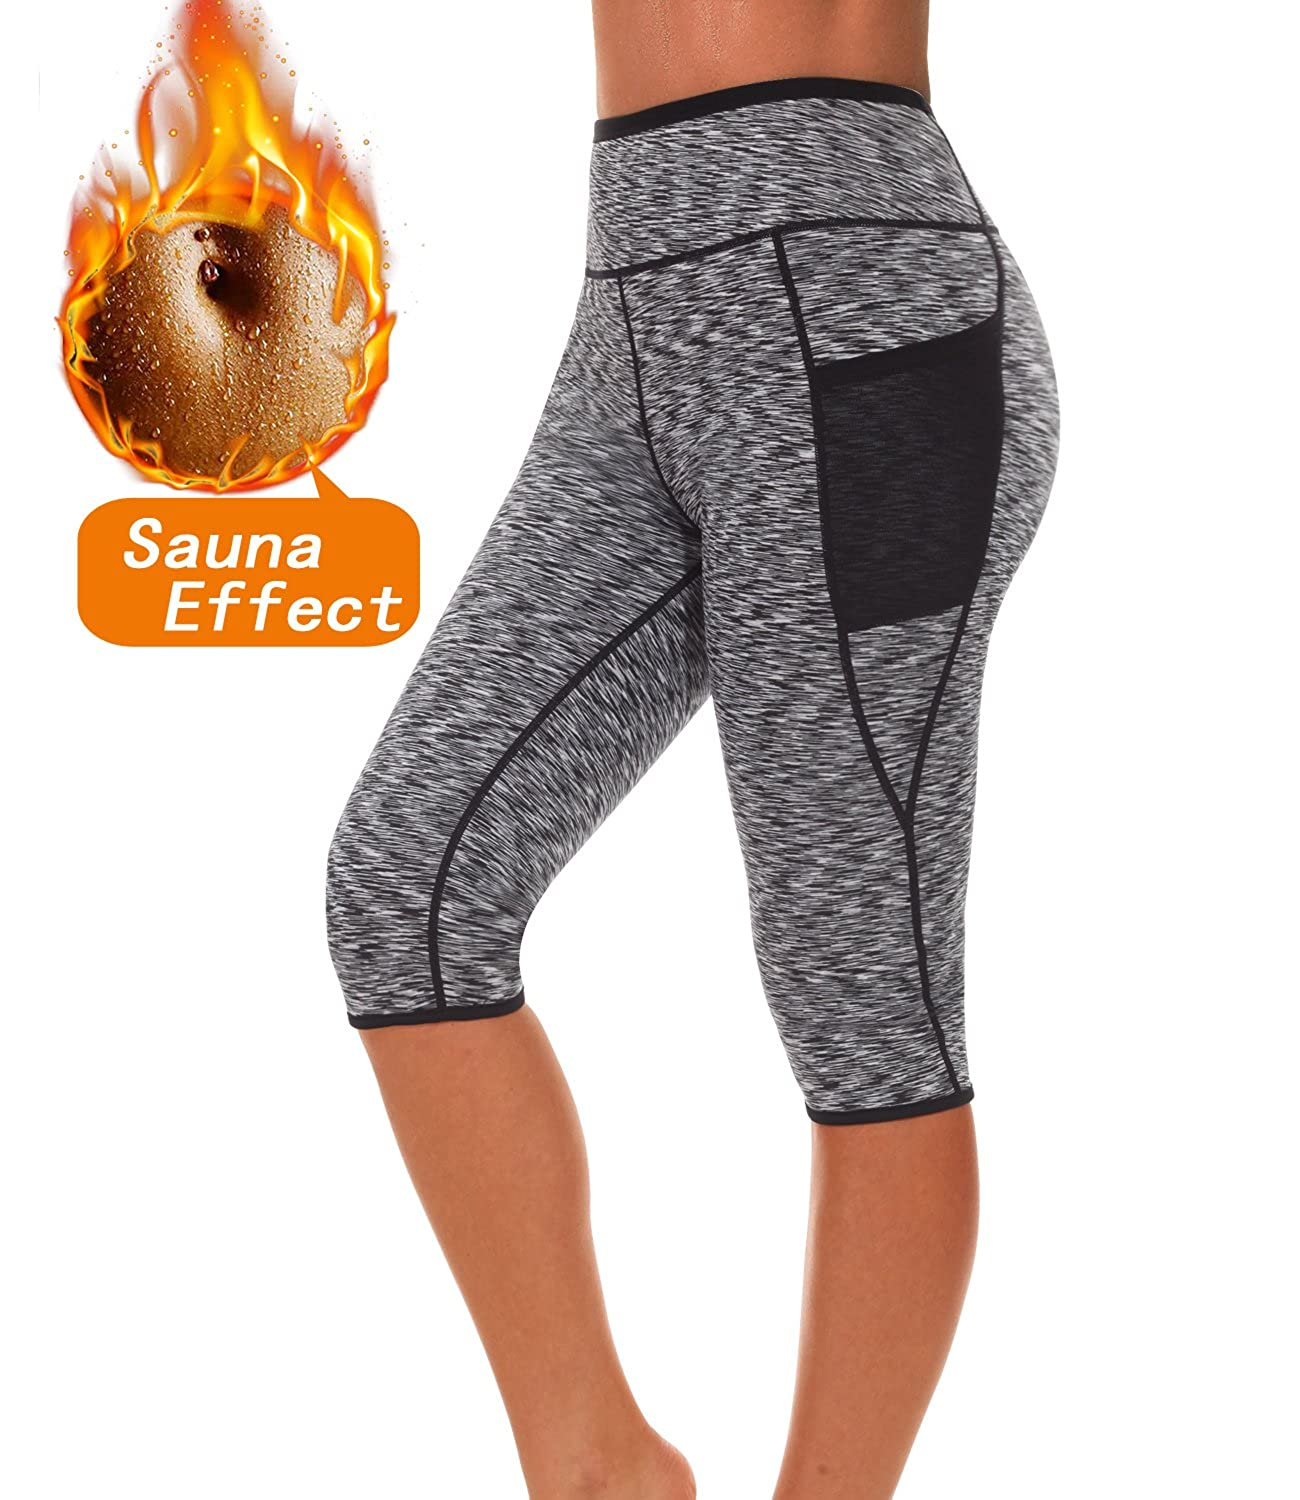 2c41f1d5991e02 The workout sauna pants is mainly made of 90% Neoprene + 10% Polyester.  which is the ideal material for sweat shapewear as it's durability and  flexibility, ...